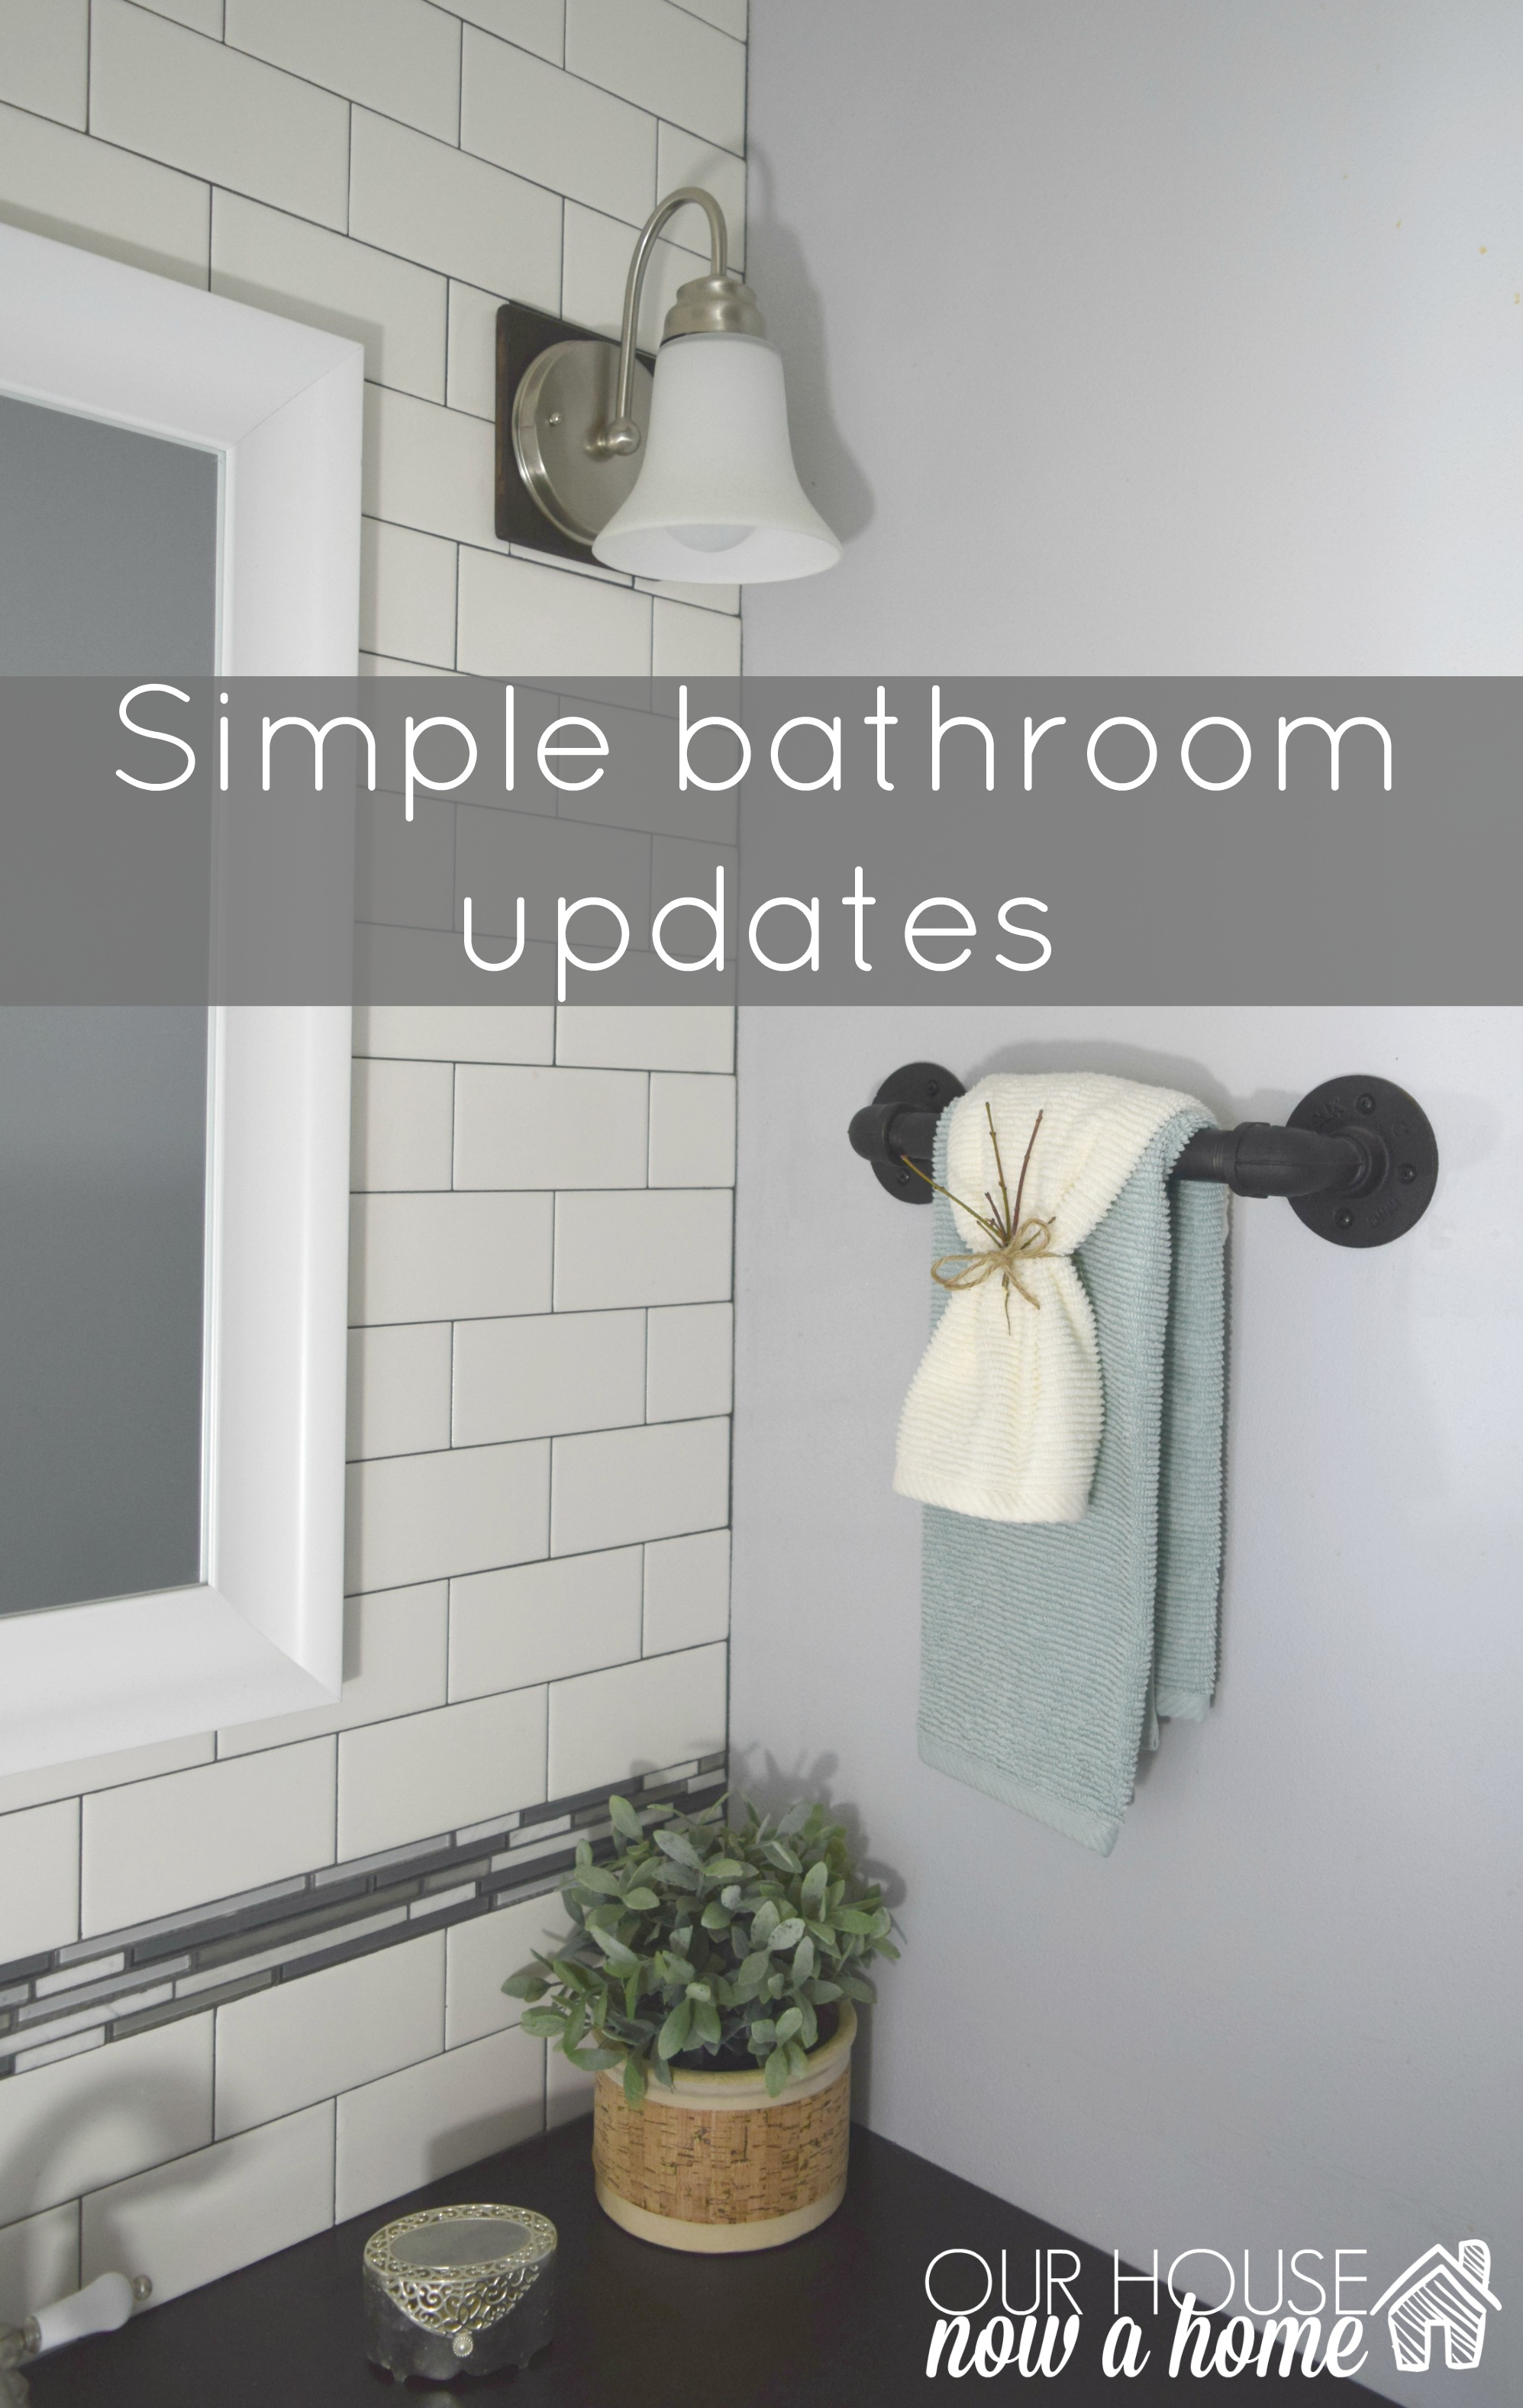 Simple bathroom updates our house now a home for Bathroom updates